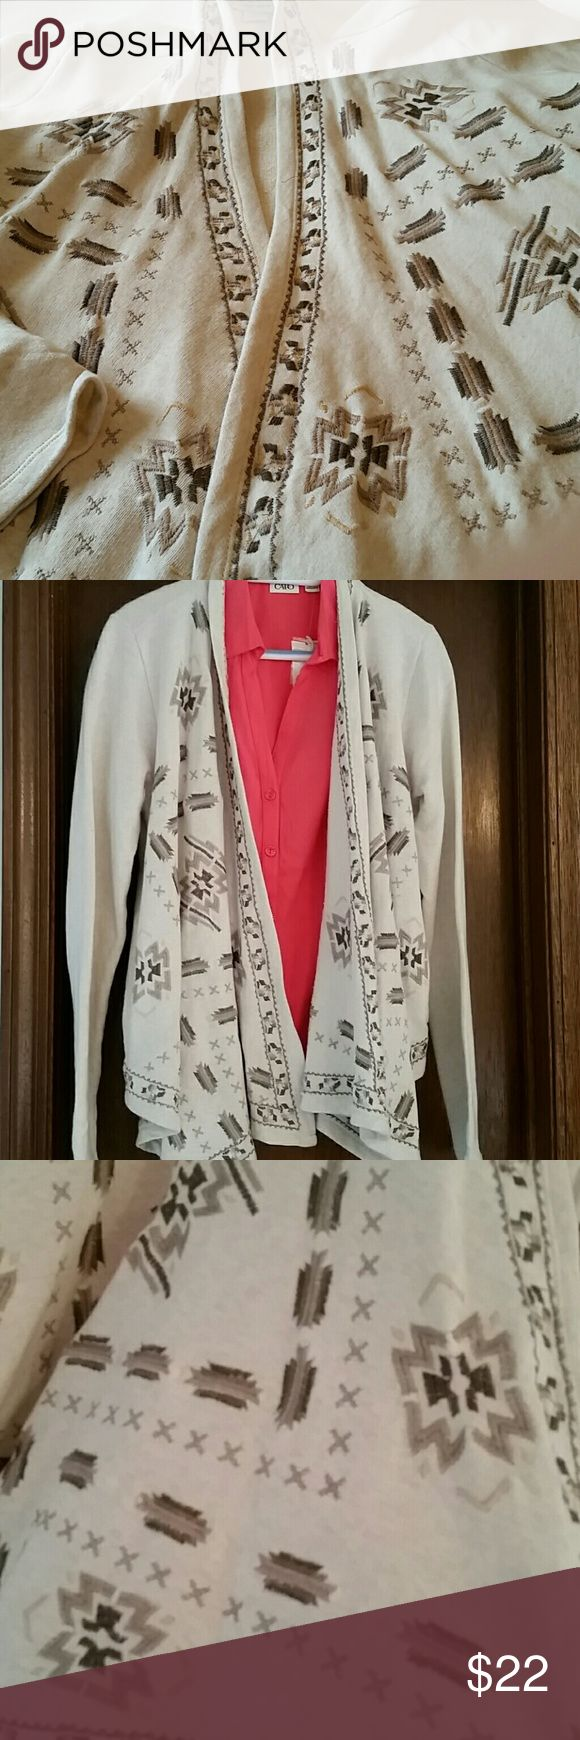 NWOT Aztec design neutral cardigan, M Washed but never worn. Seems a bit larger than a medium or could just be roomy. Not best for very short woman (me). Soft and so pretty. Lucky Brand Sweaters Cardigans